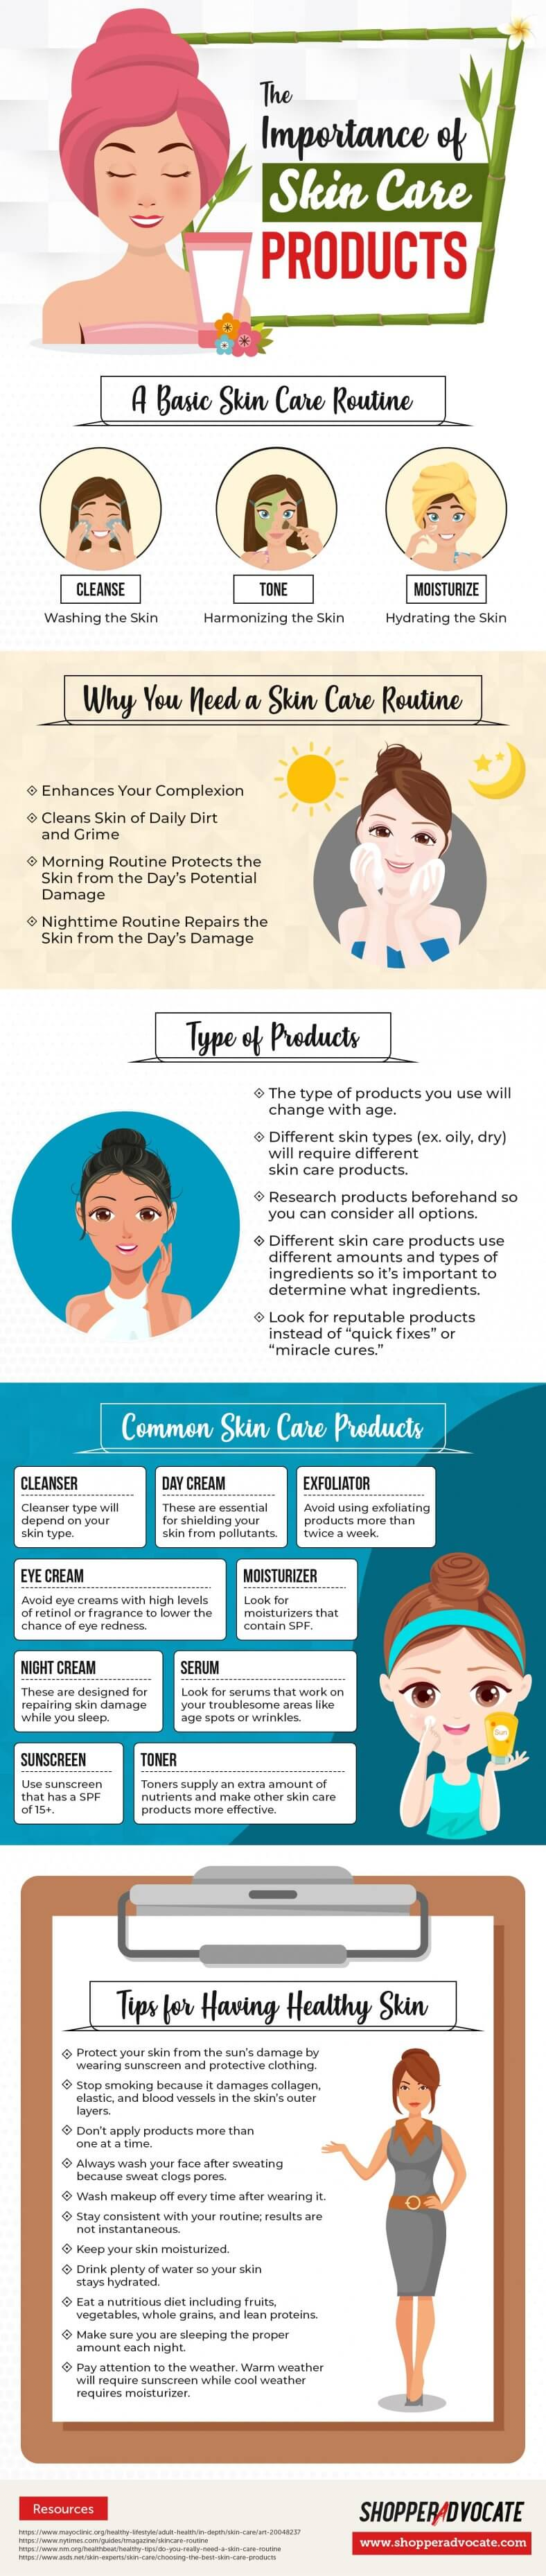 Choosing the Right Skin Care Products and Routine - Infographic